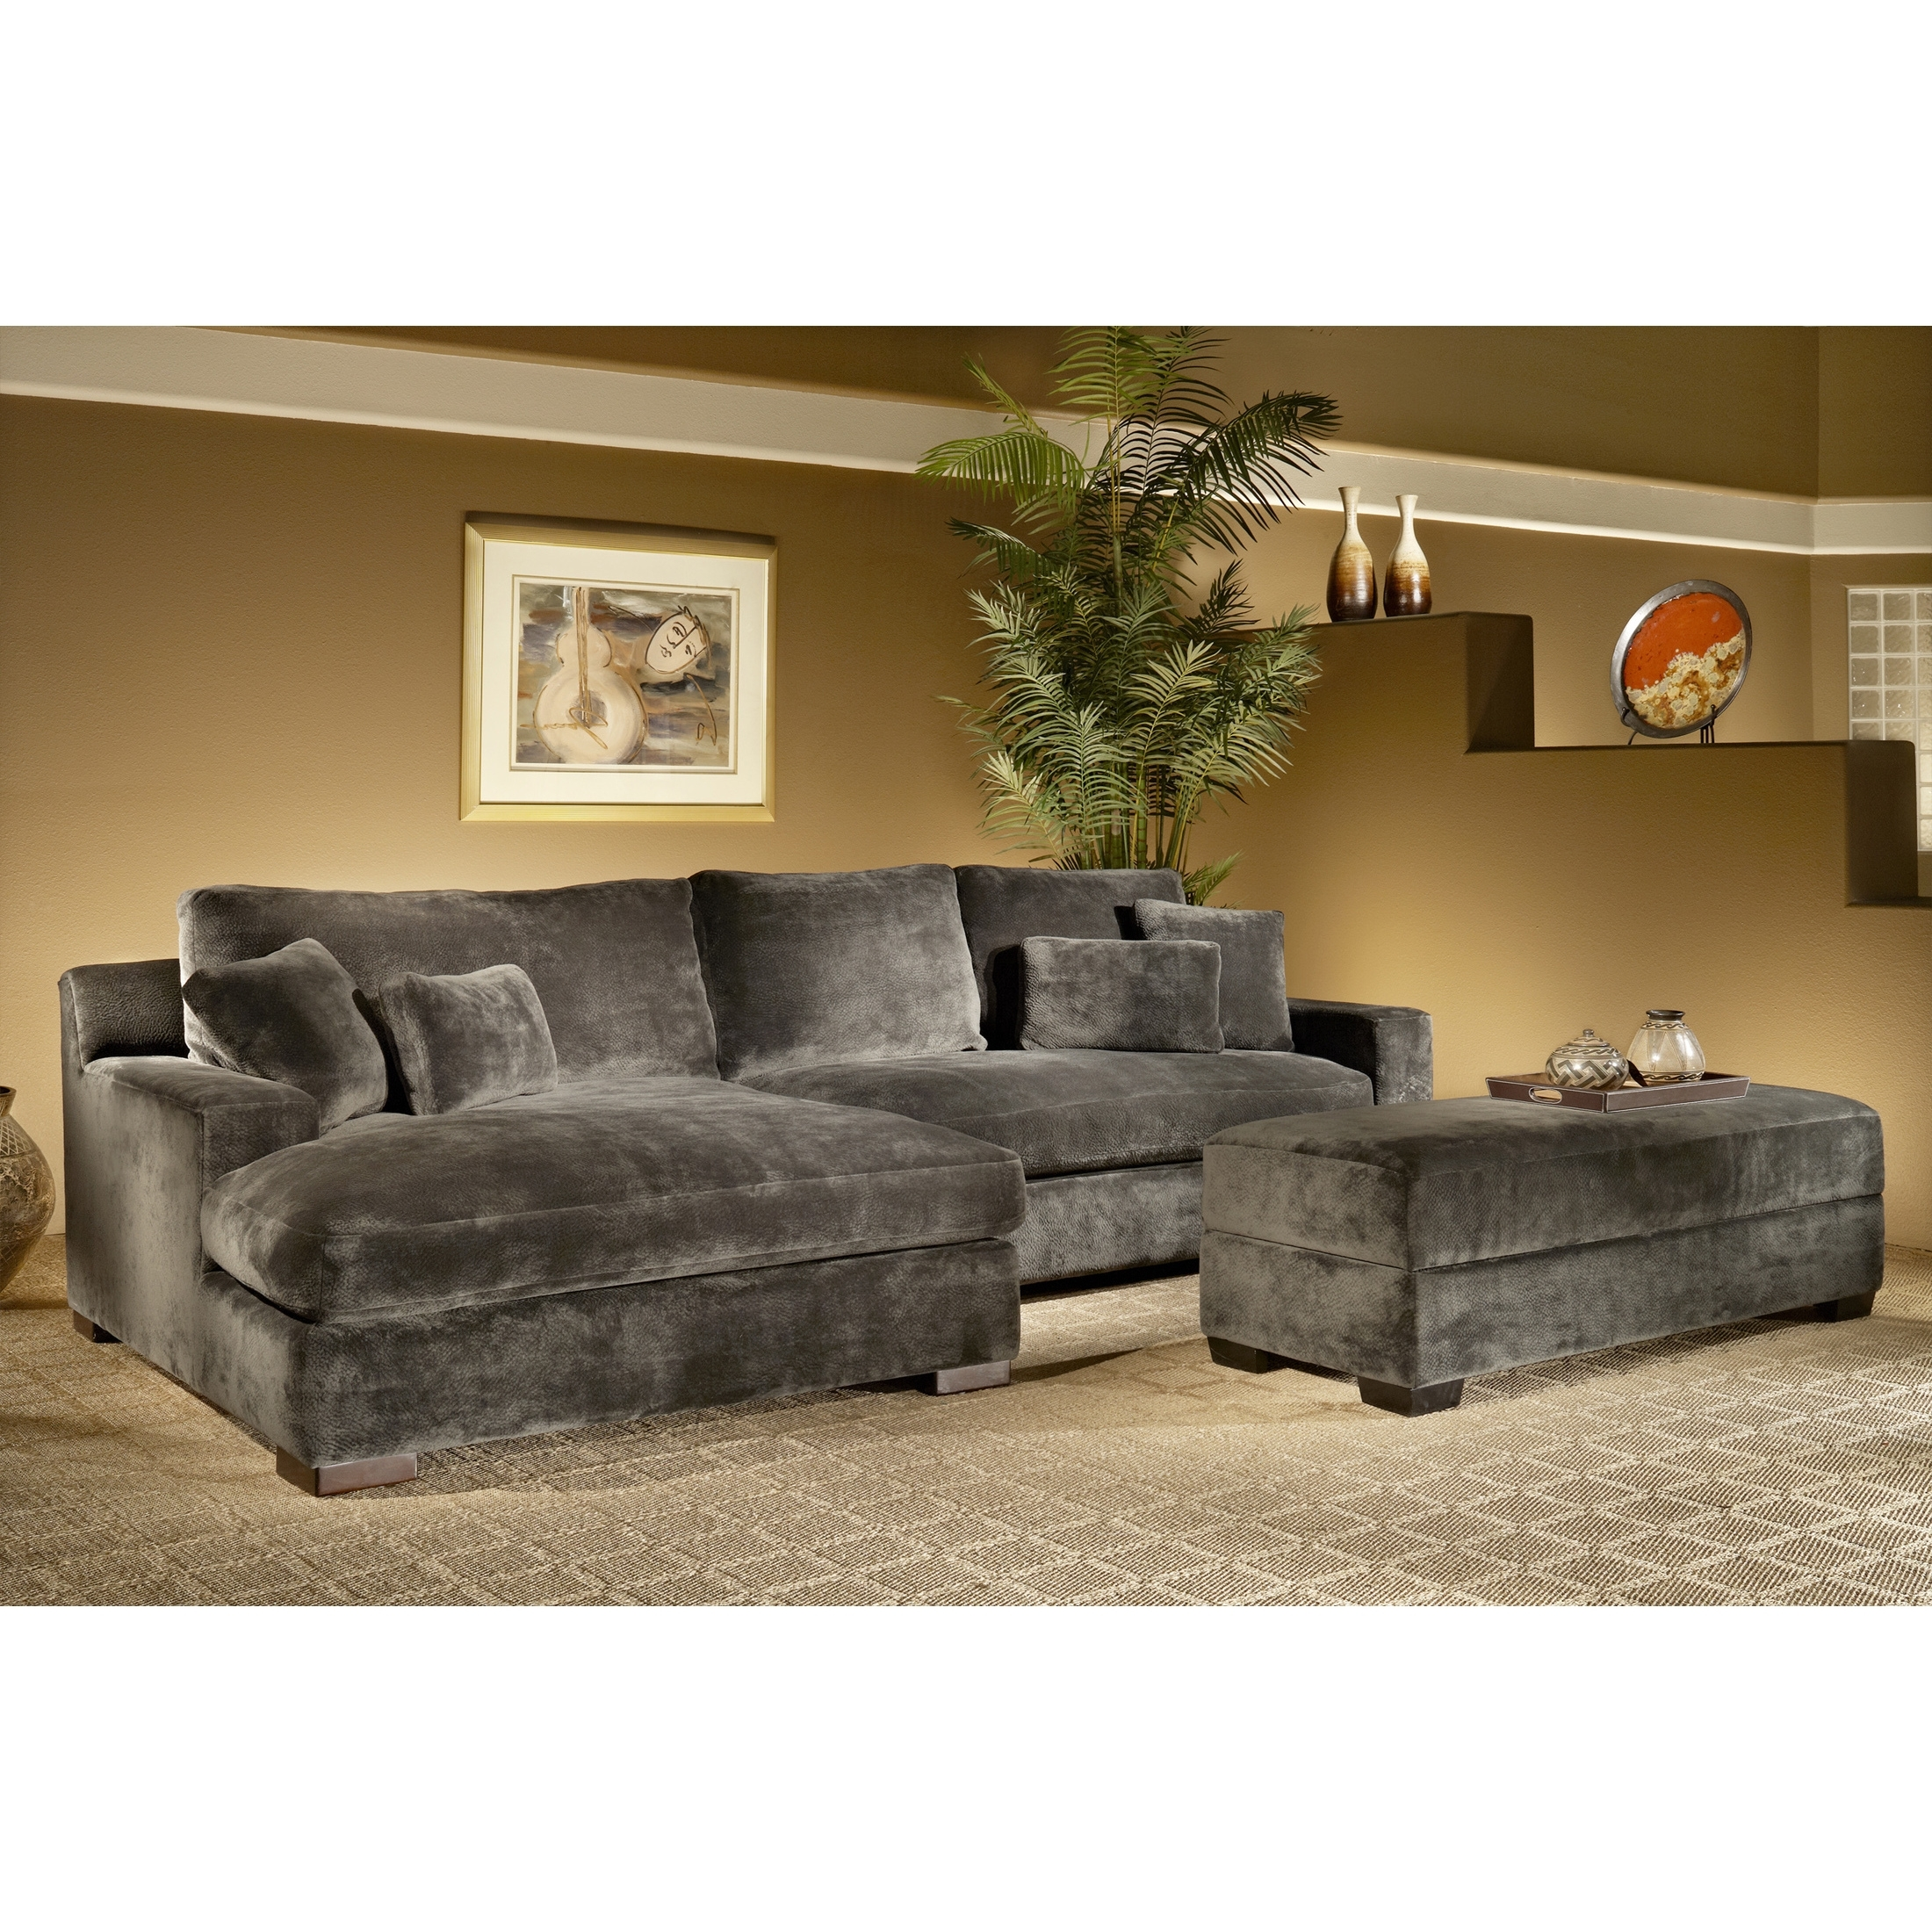 Newest The Casual Contemporary Doris Two Piece Chaise Sectional Is With Ventura County Sectional Sofas (View 8 of 20)